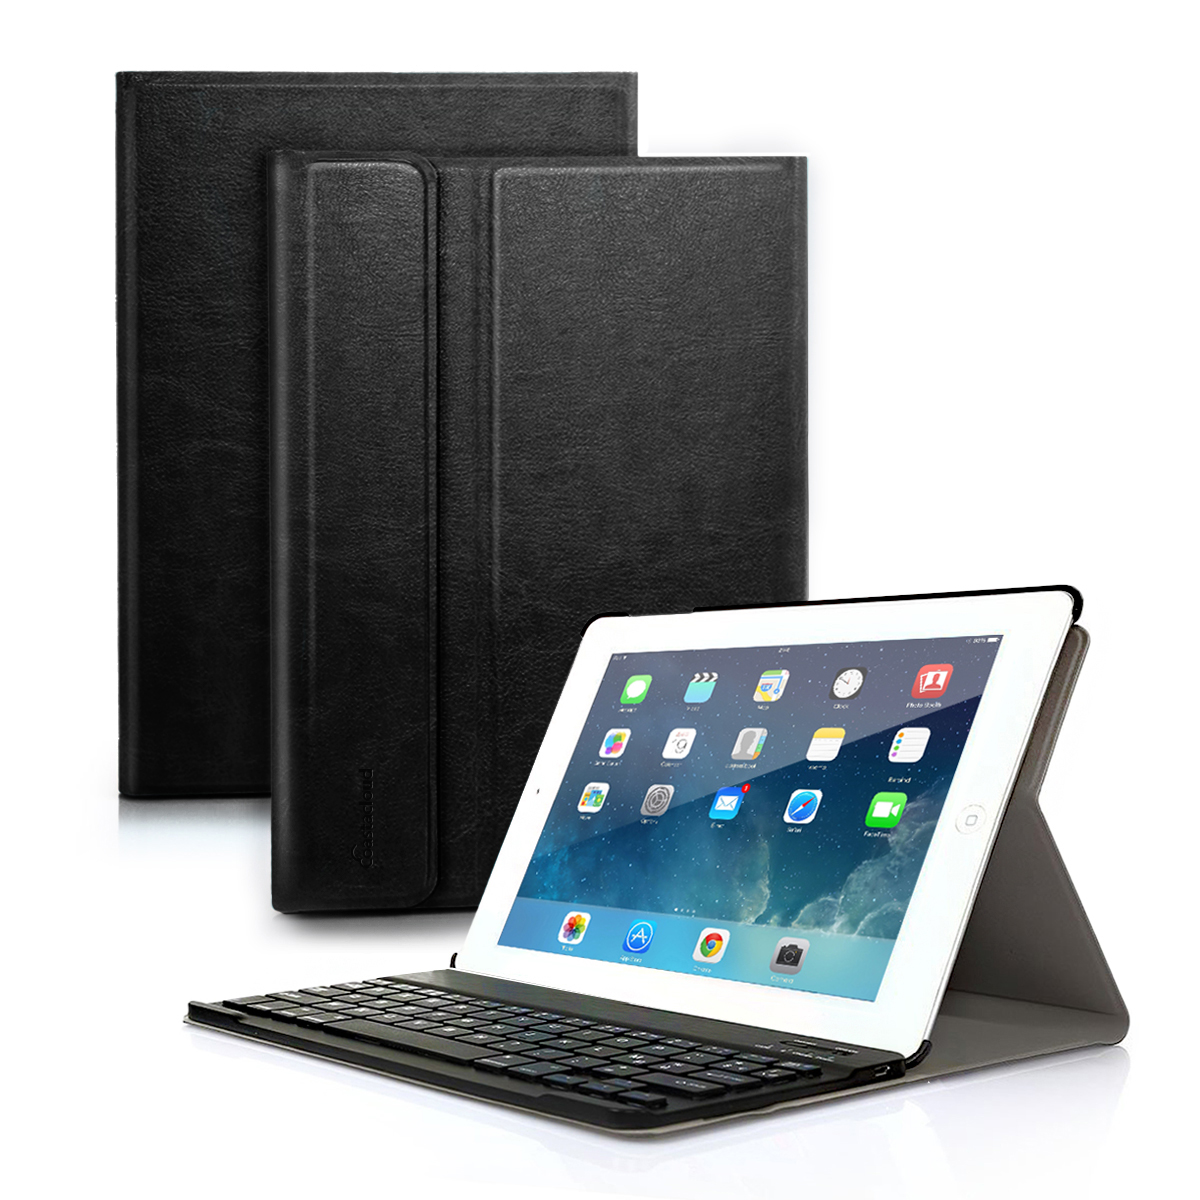 iPad mini 1/2/3 Keyboard Case PU Leather Folio Stand Cover with Detachable Wireless Bluetooth Keyboard for iPad mini3/iPad mini 2/iPad mini 1